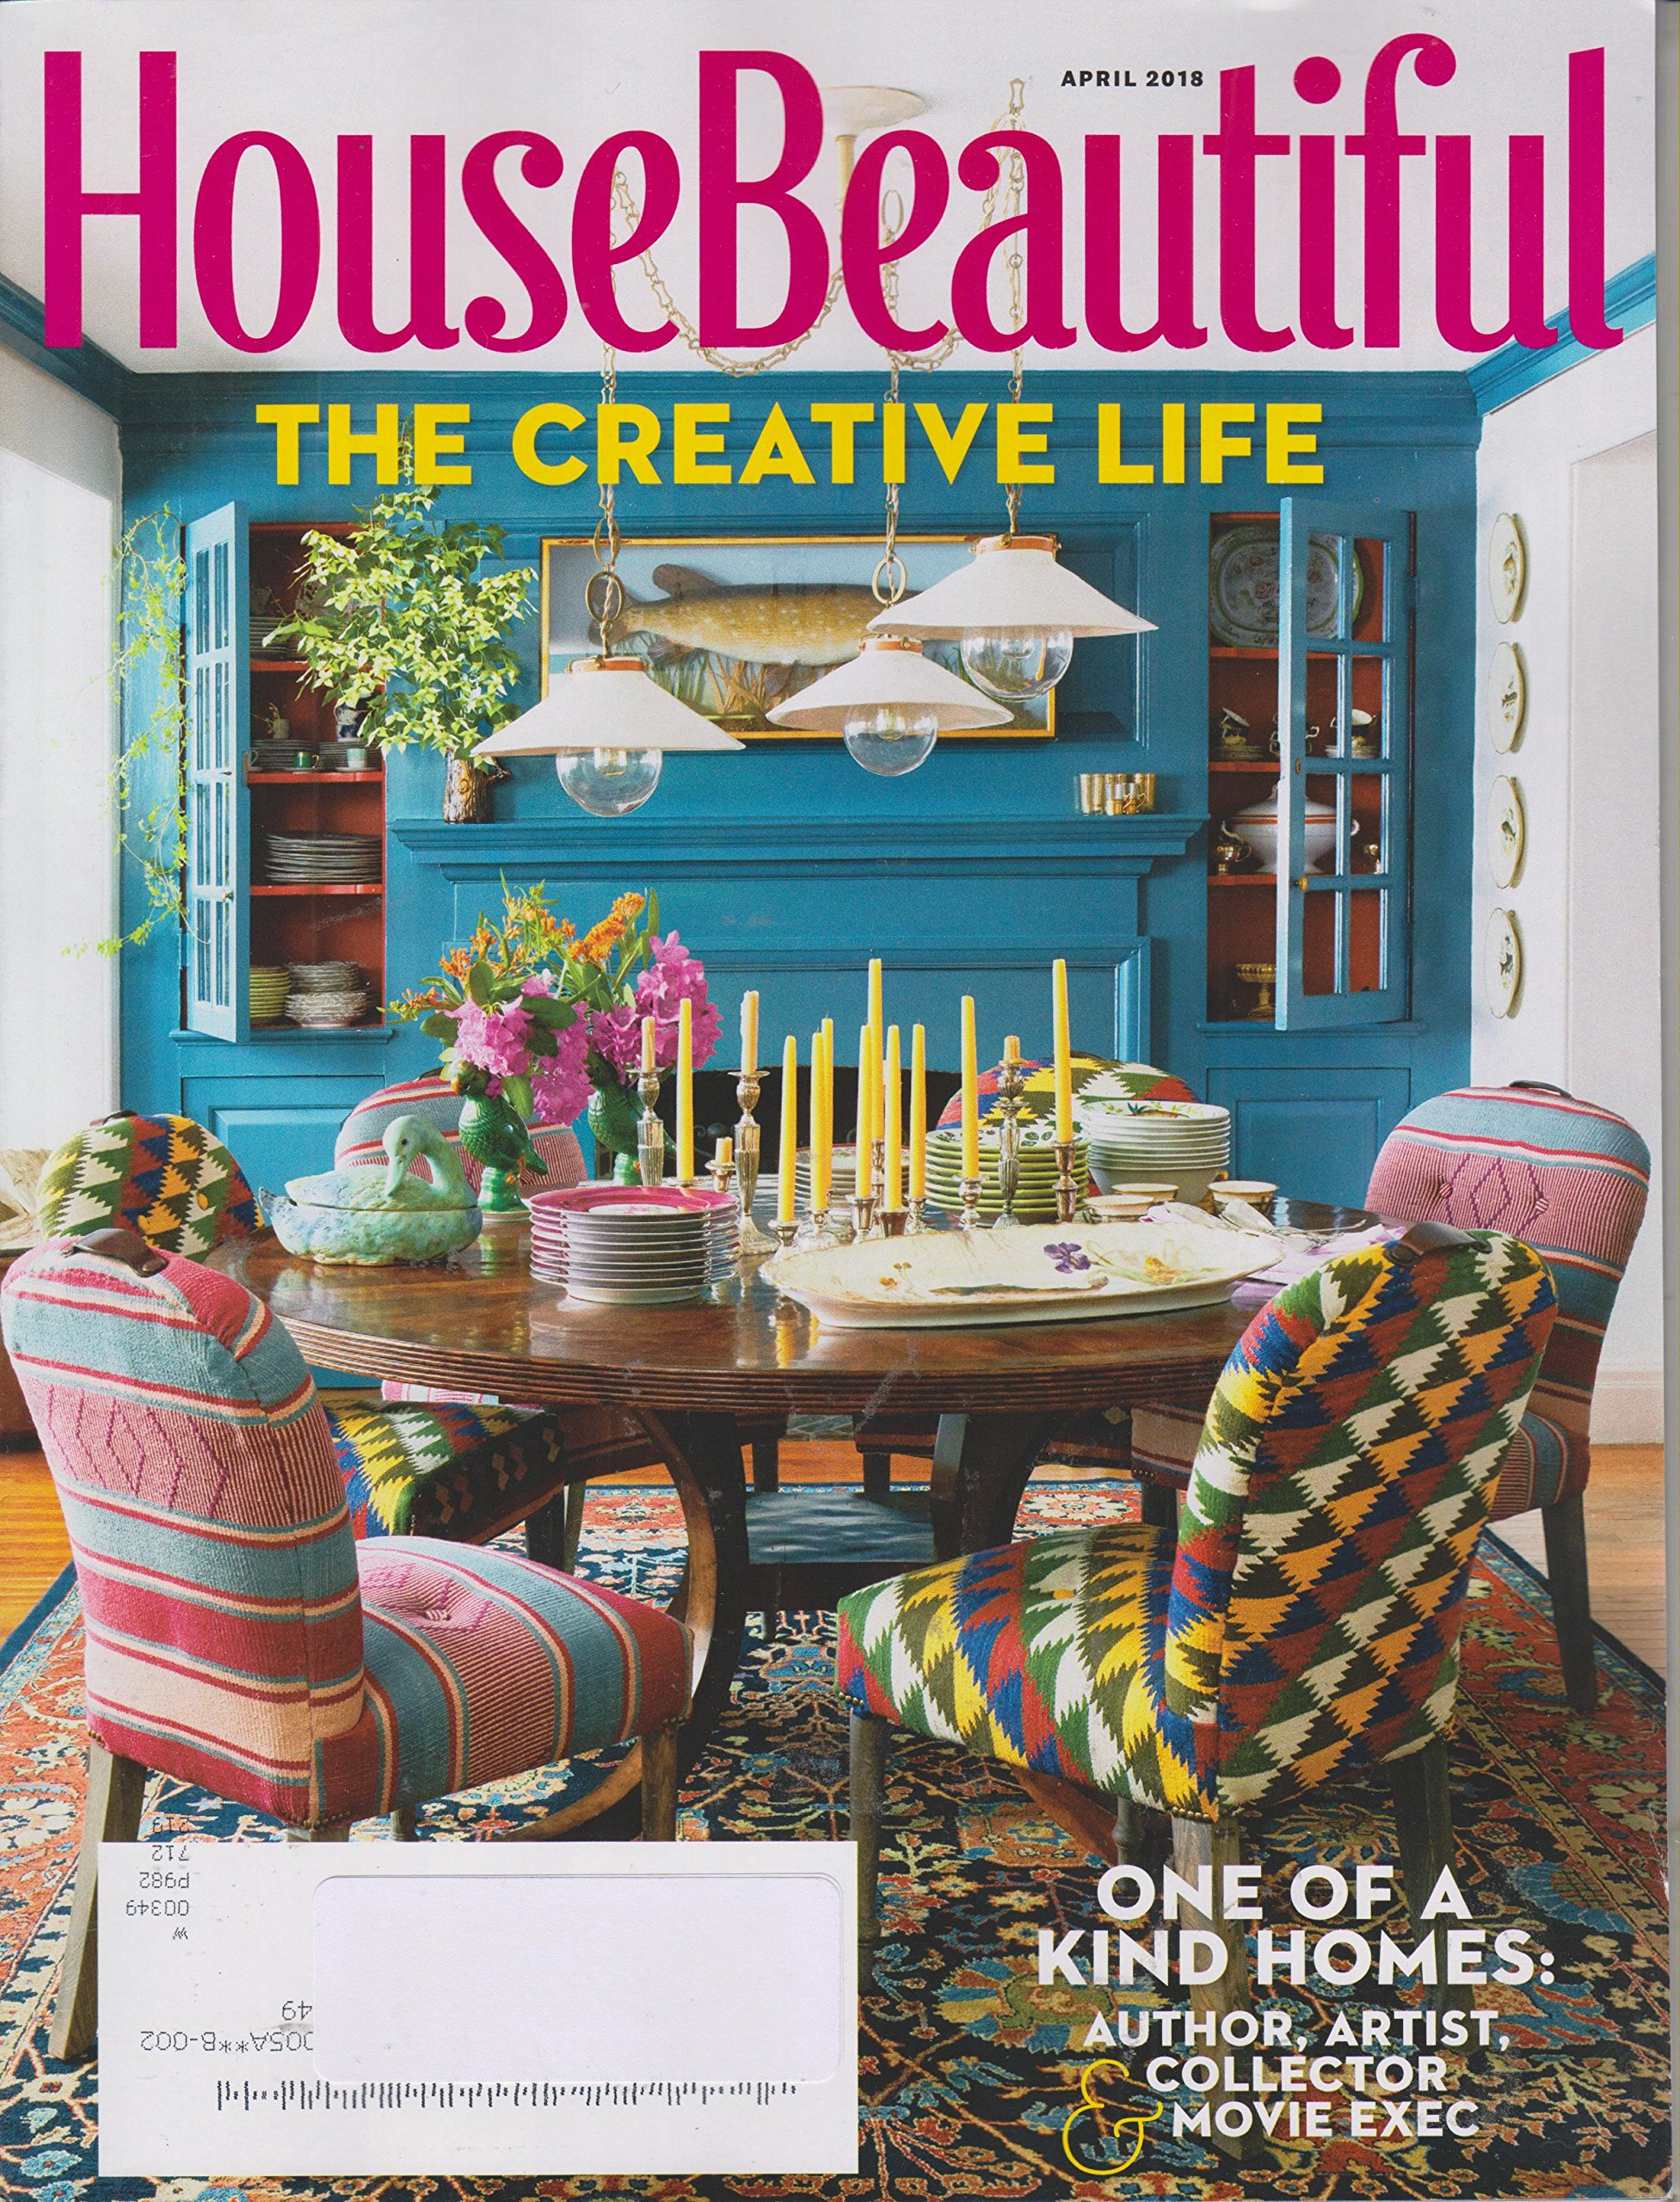 House Beautiful April 2018 The Creative Life - One of a Kind ...